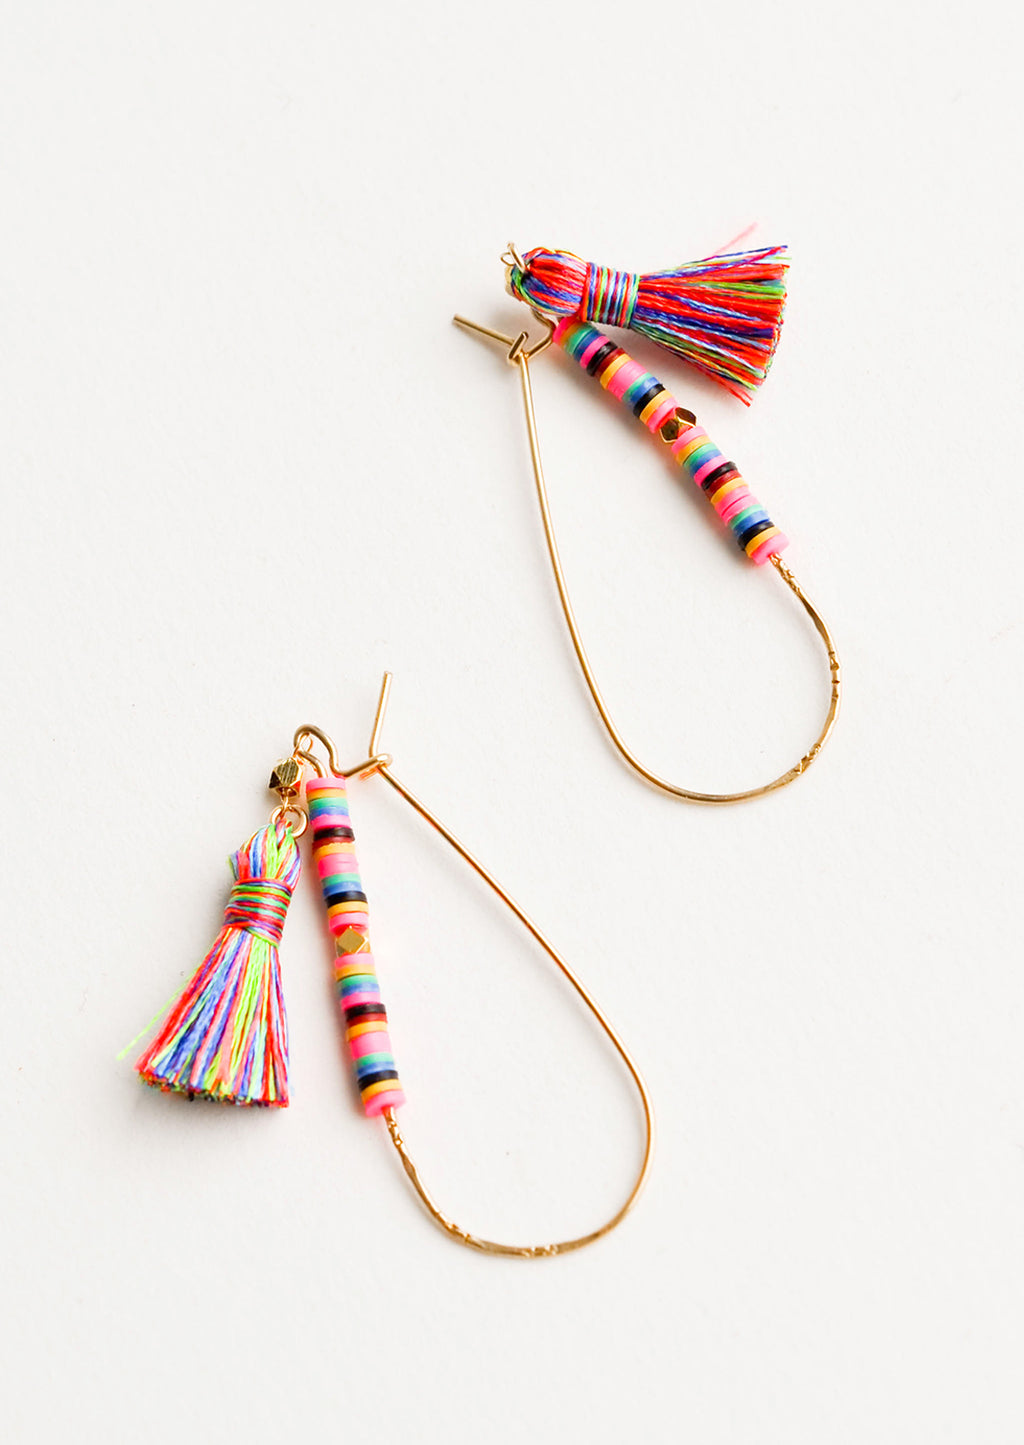 1: Thing gold teardrop earrings with bright multicolored beading and tassel on one half.